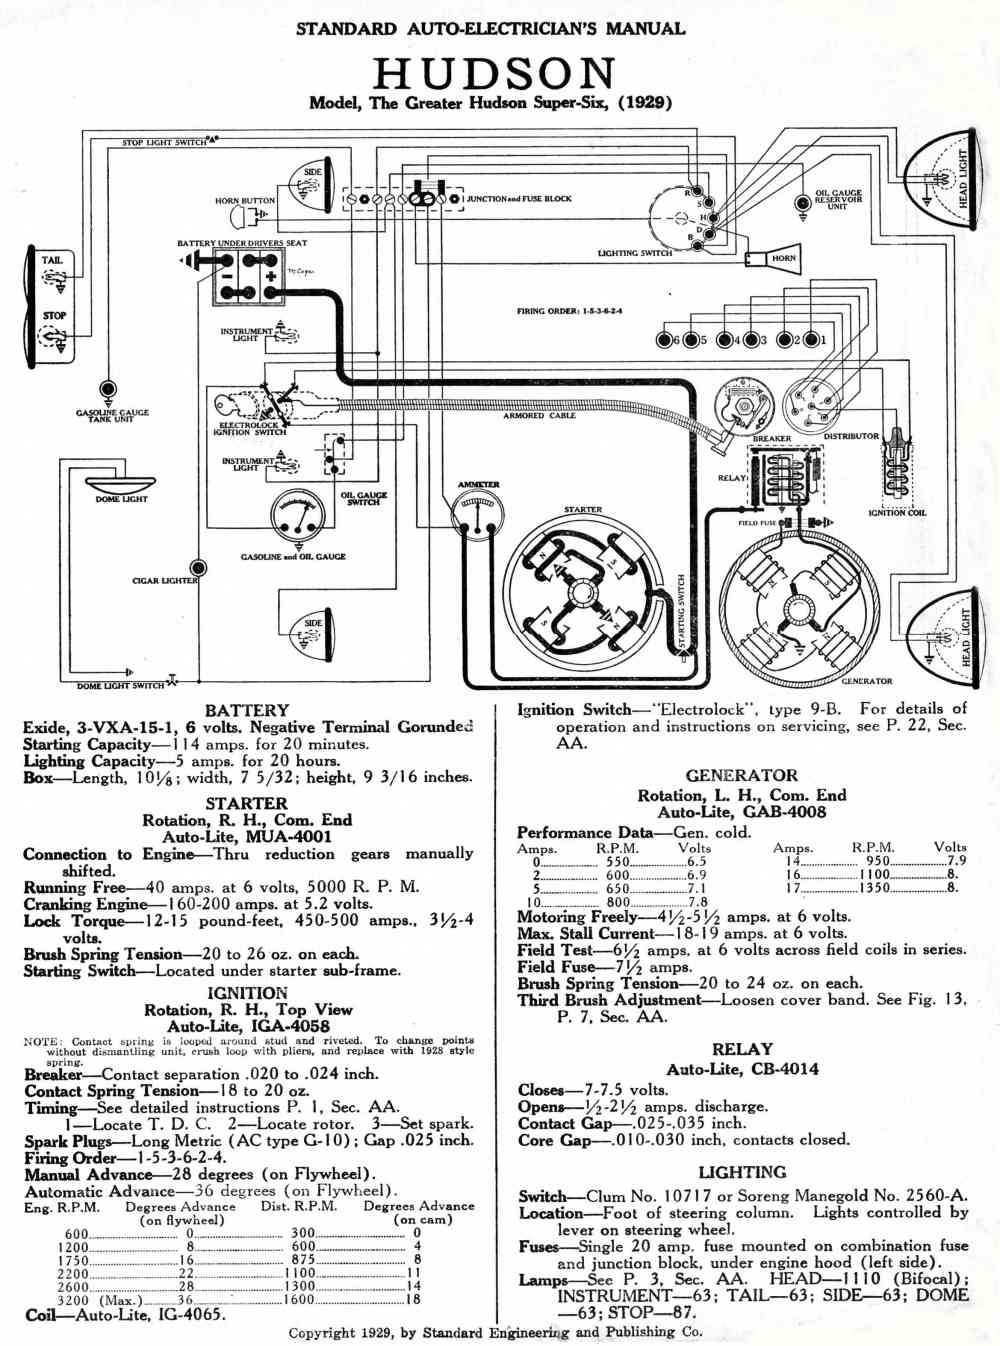 medium resolution of 1929 electrical diagram hudson manuals tech index 1929 electrical diagram 1954 chrysler new yorker